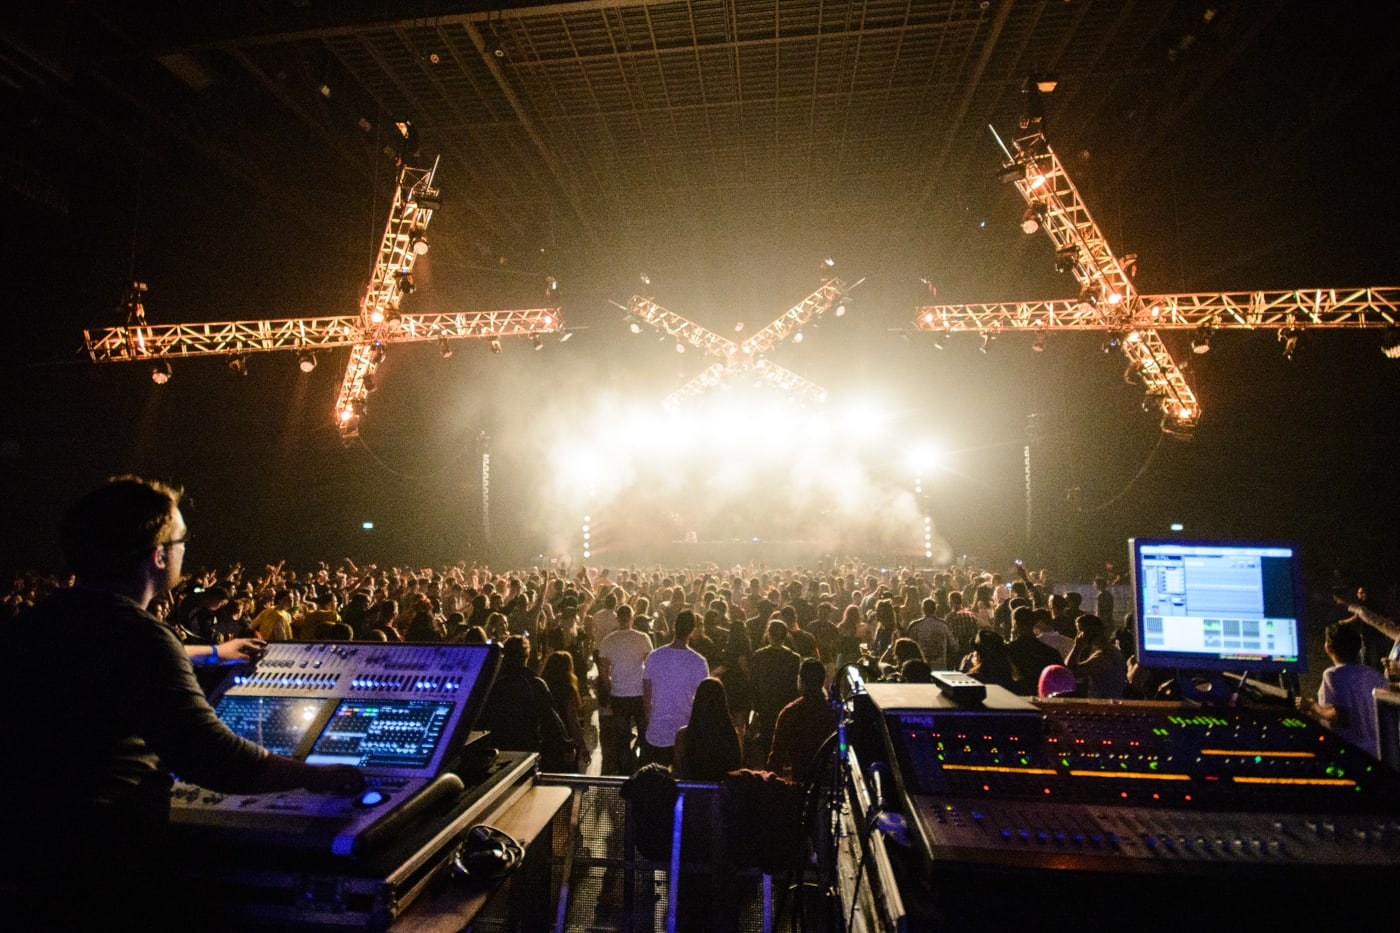 winterparty-at-3arena-dublin-30-10-2016-by-sean-smyth-10-of-53